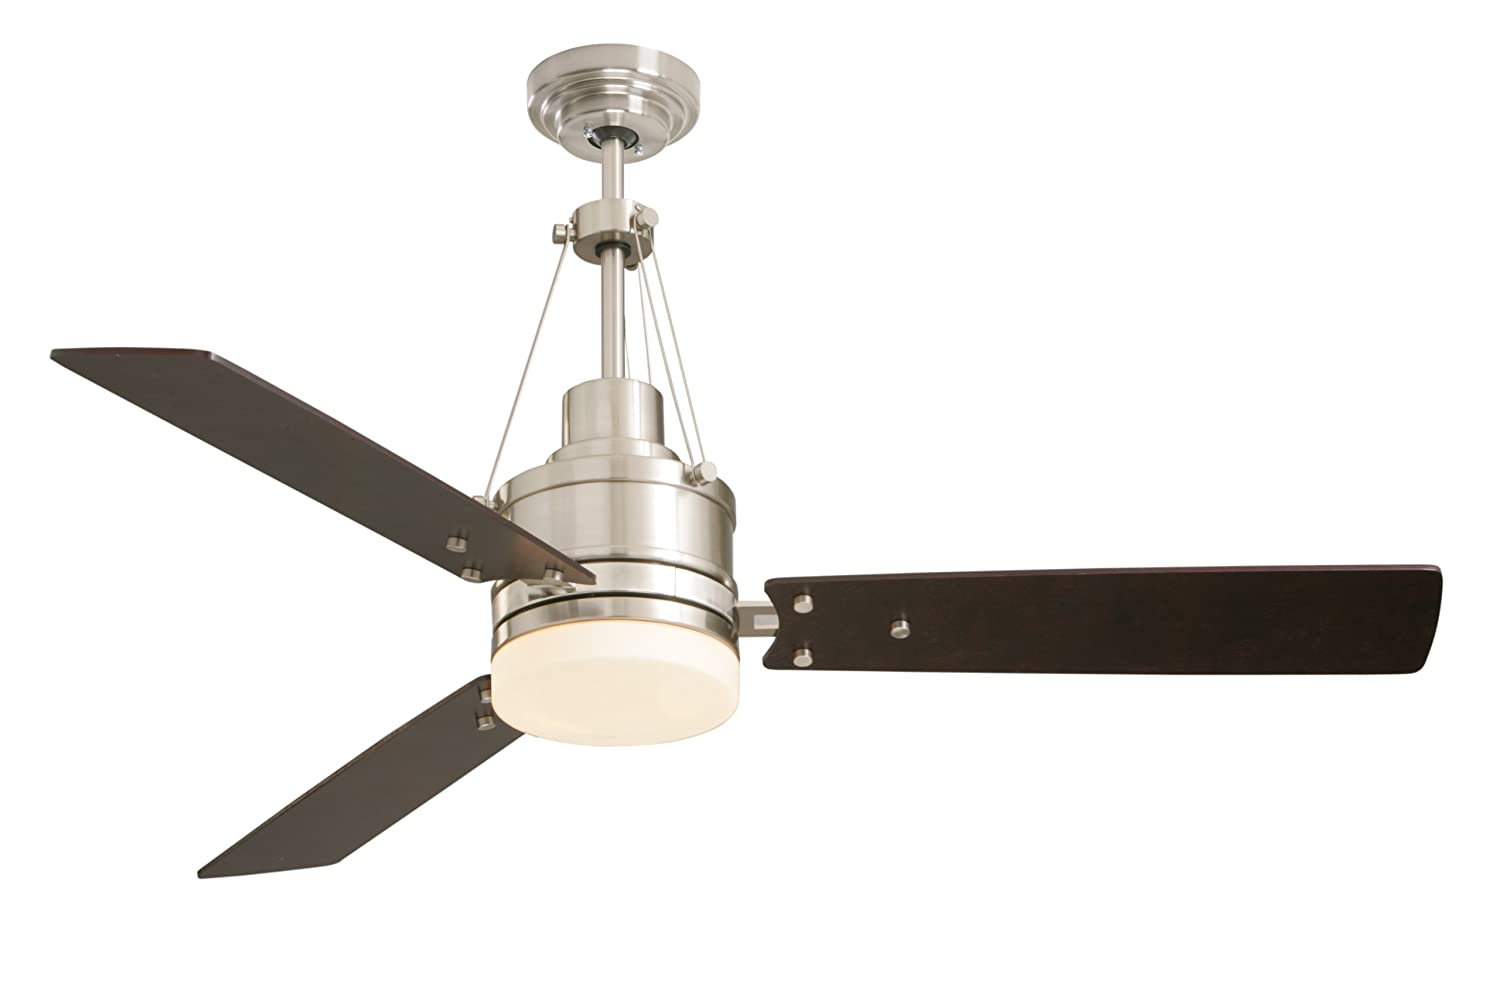 Emerson cf205bs ceiling fan with light and remote 54 inch blades emerson cf205bs ceiling fan with light and remote 54 inch blades brushed steel close to ceiling light fixtures amazon aloadofball Gallery